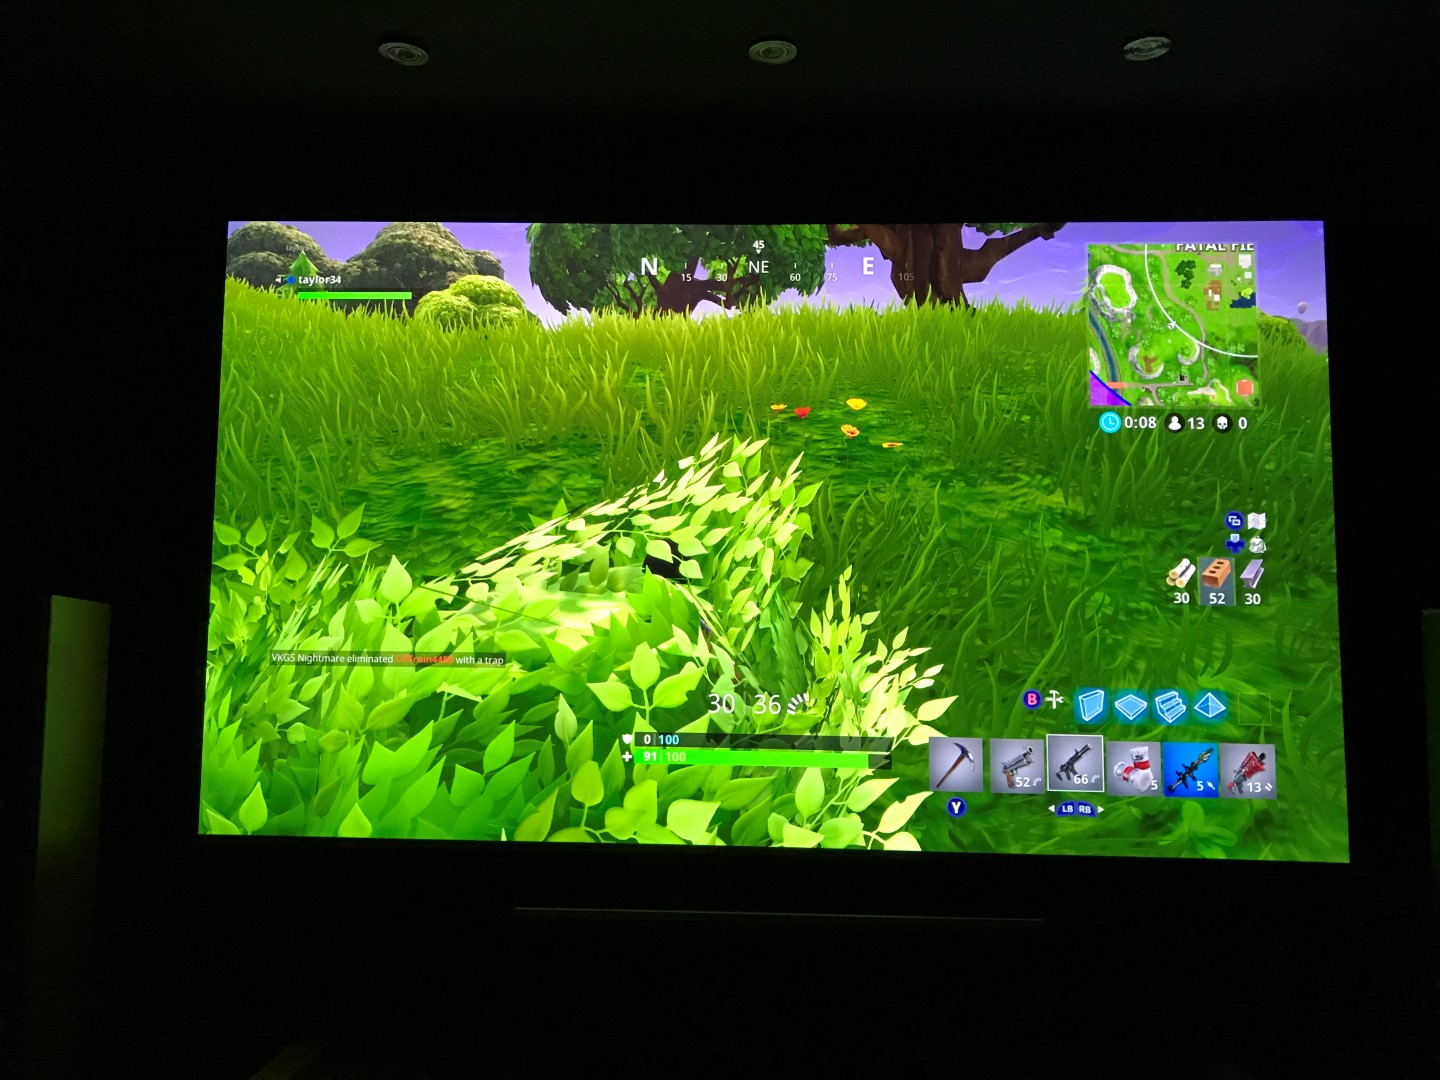 Fortnite bush camping